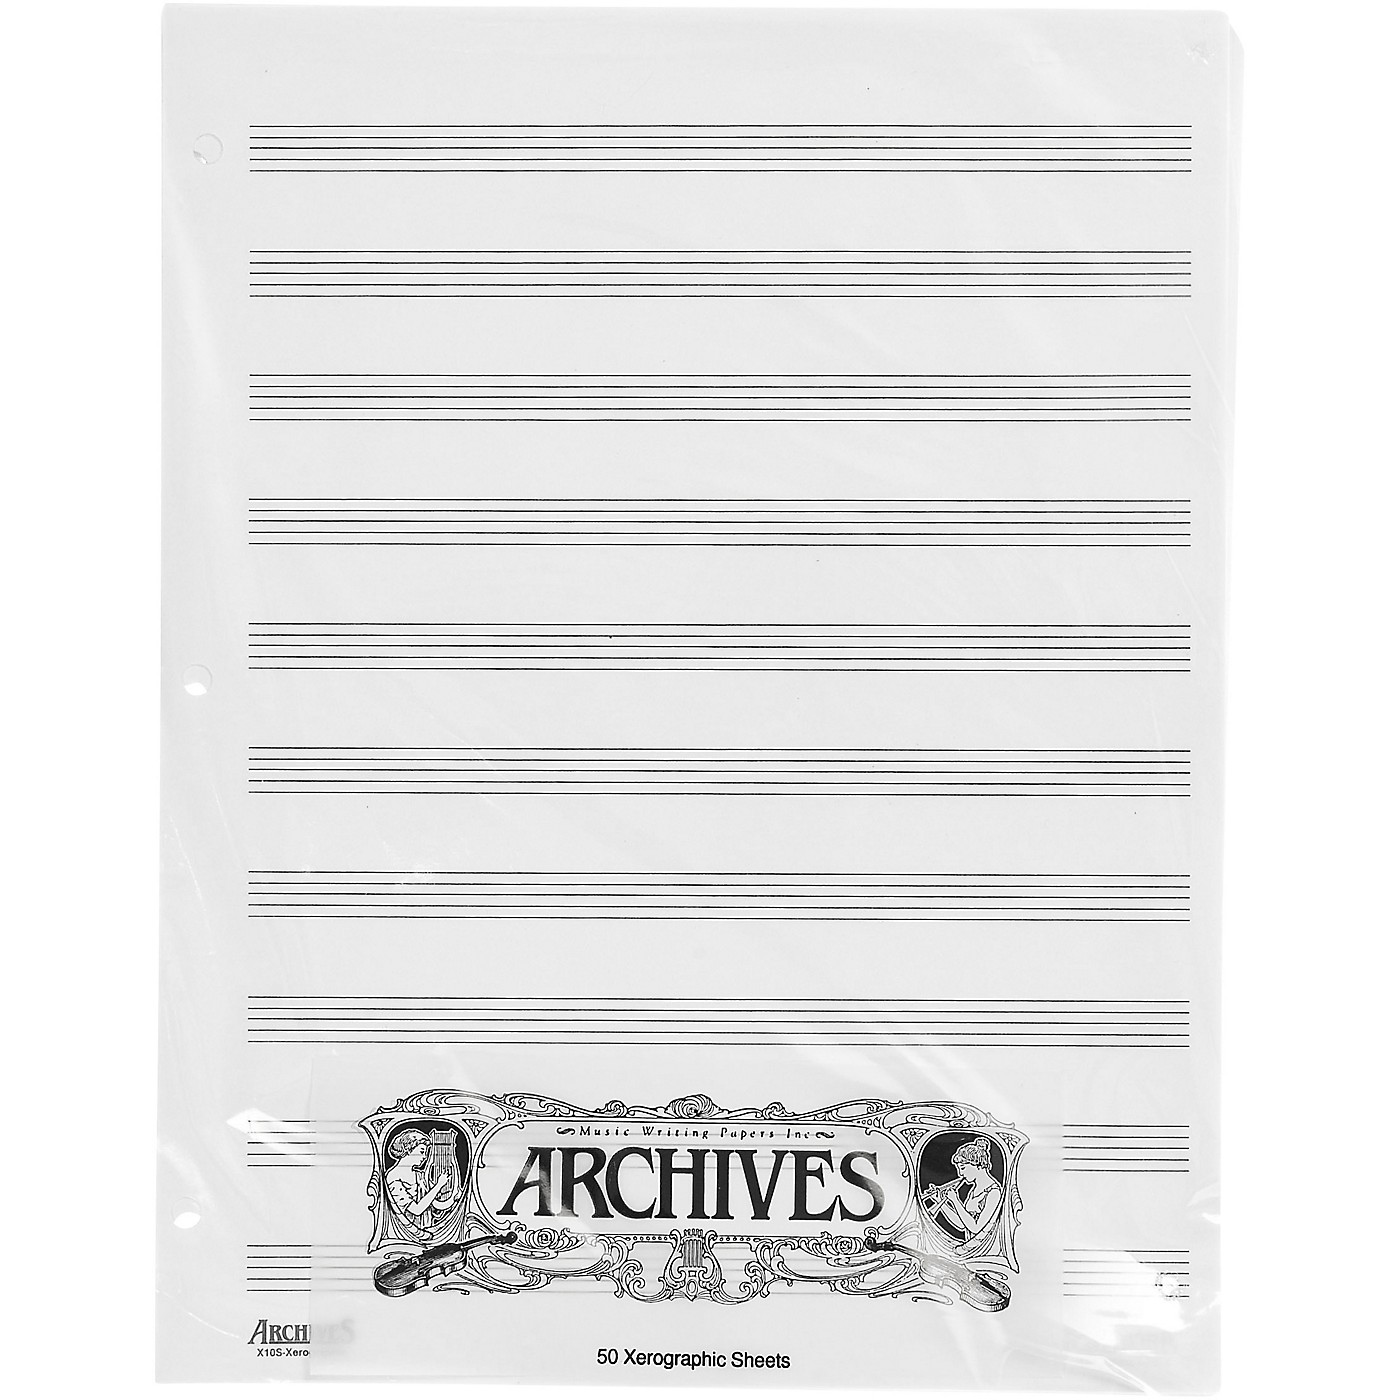 Archives Loose Leaf Manuscript Paper 10 Stave 50 Xerographic Sheets thumbnail